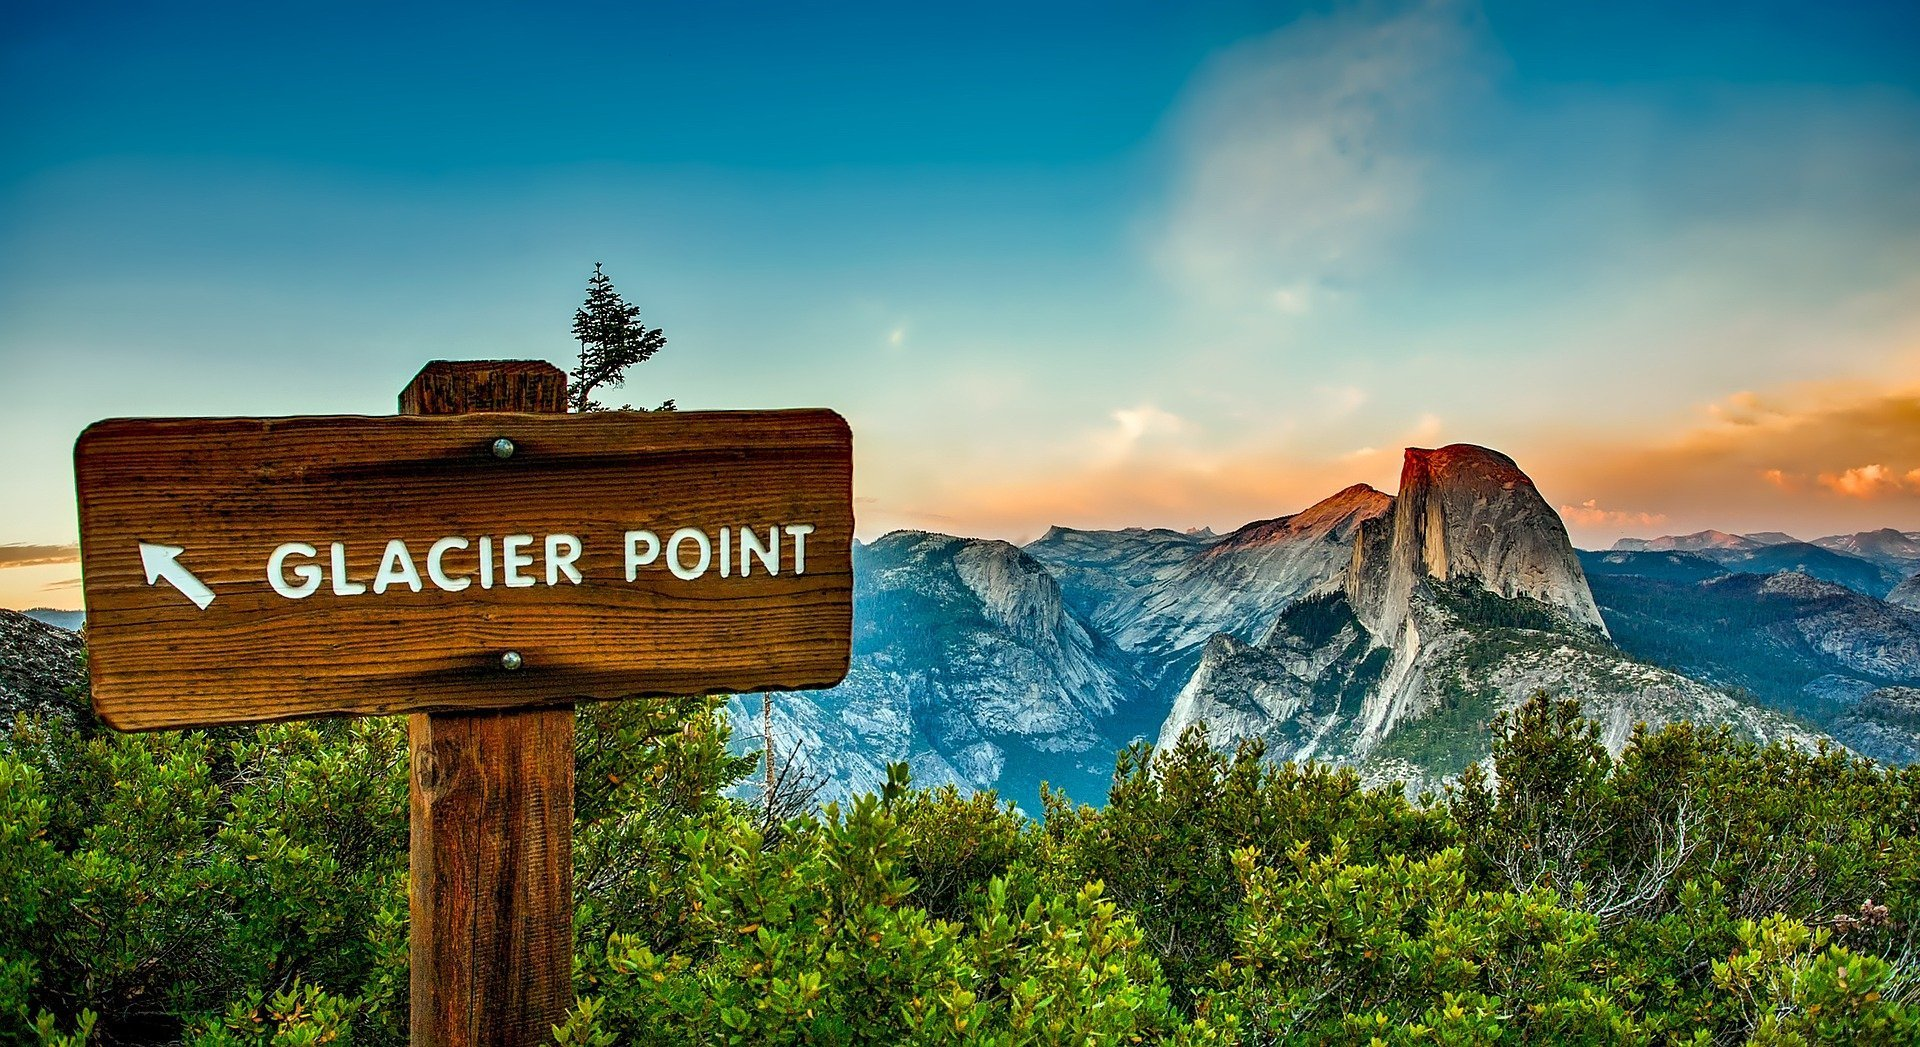 USA Glacier Point Yosemite